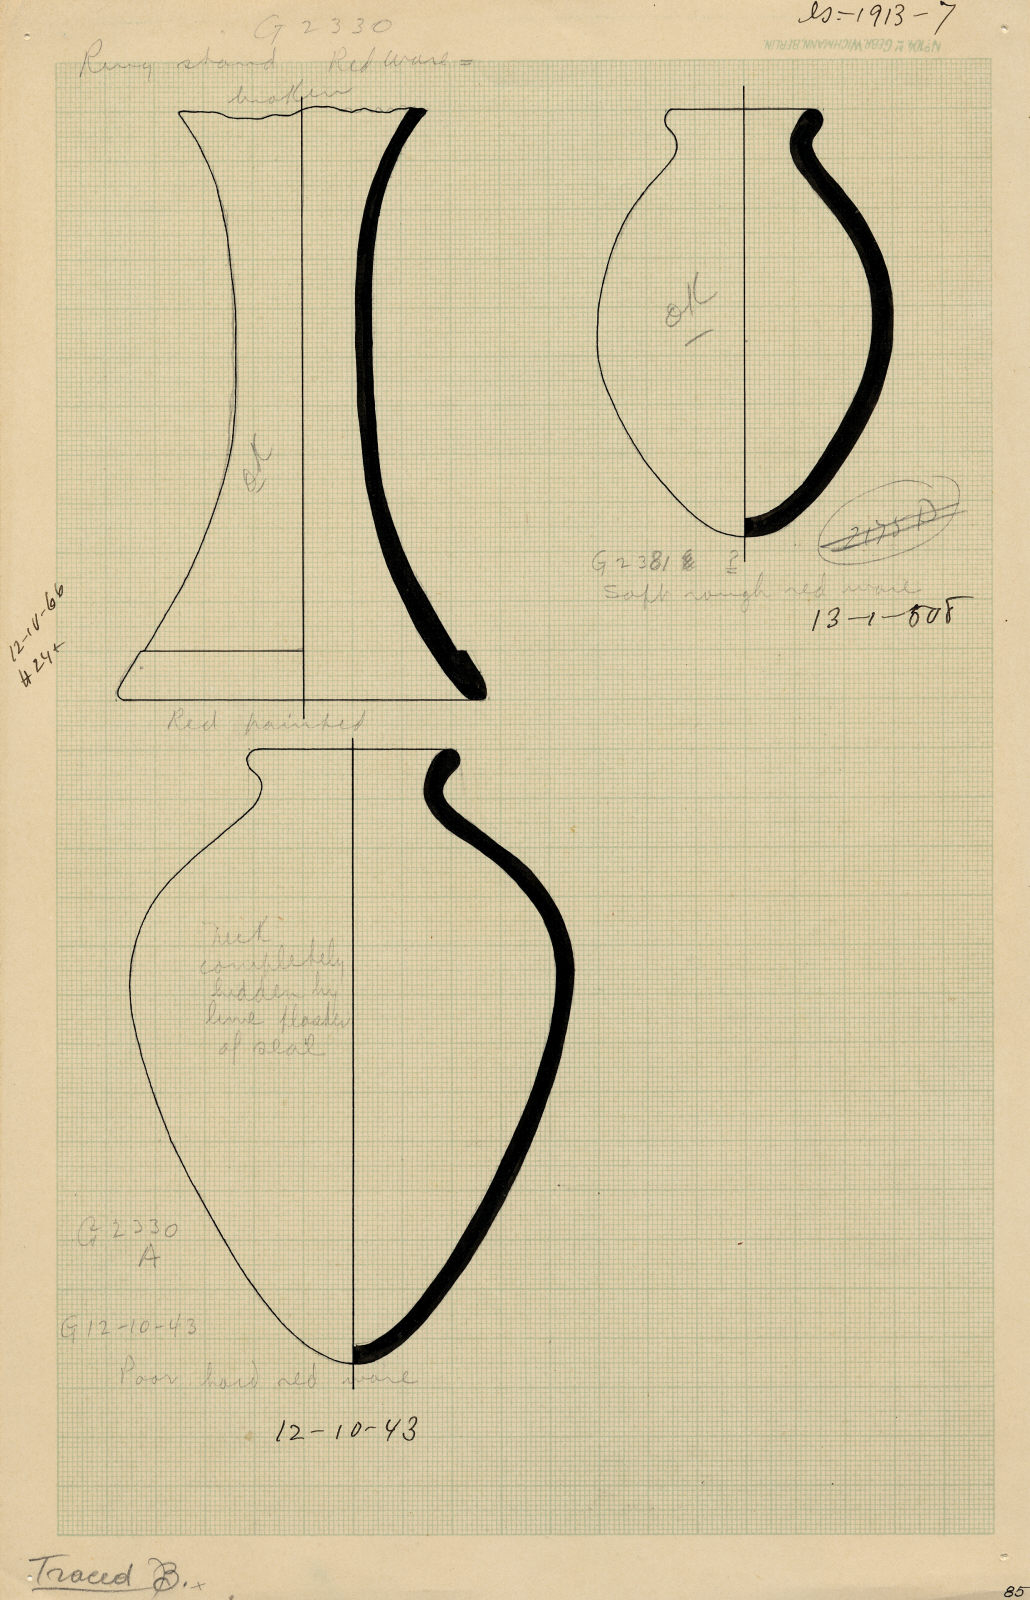 Drawings: Pottery, objects from G 2330 (= G 5380), G 2330 (= G 5380), Shaft A, G 2381